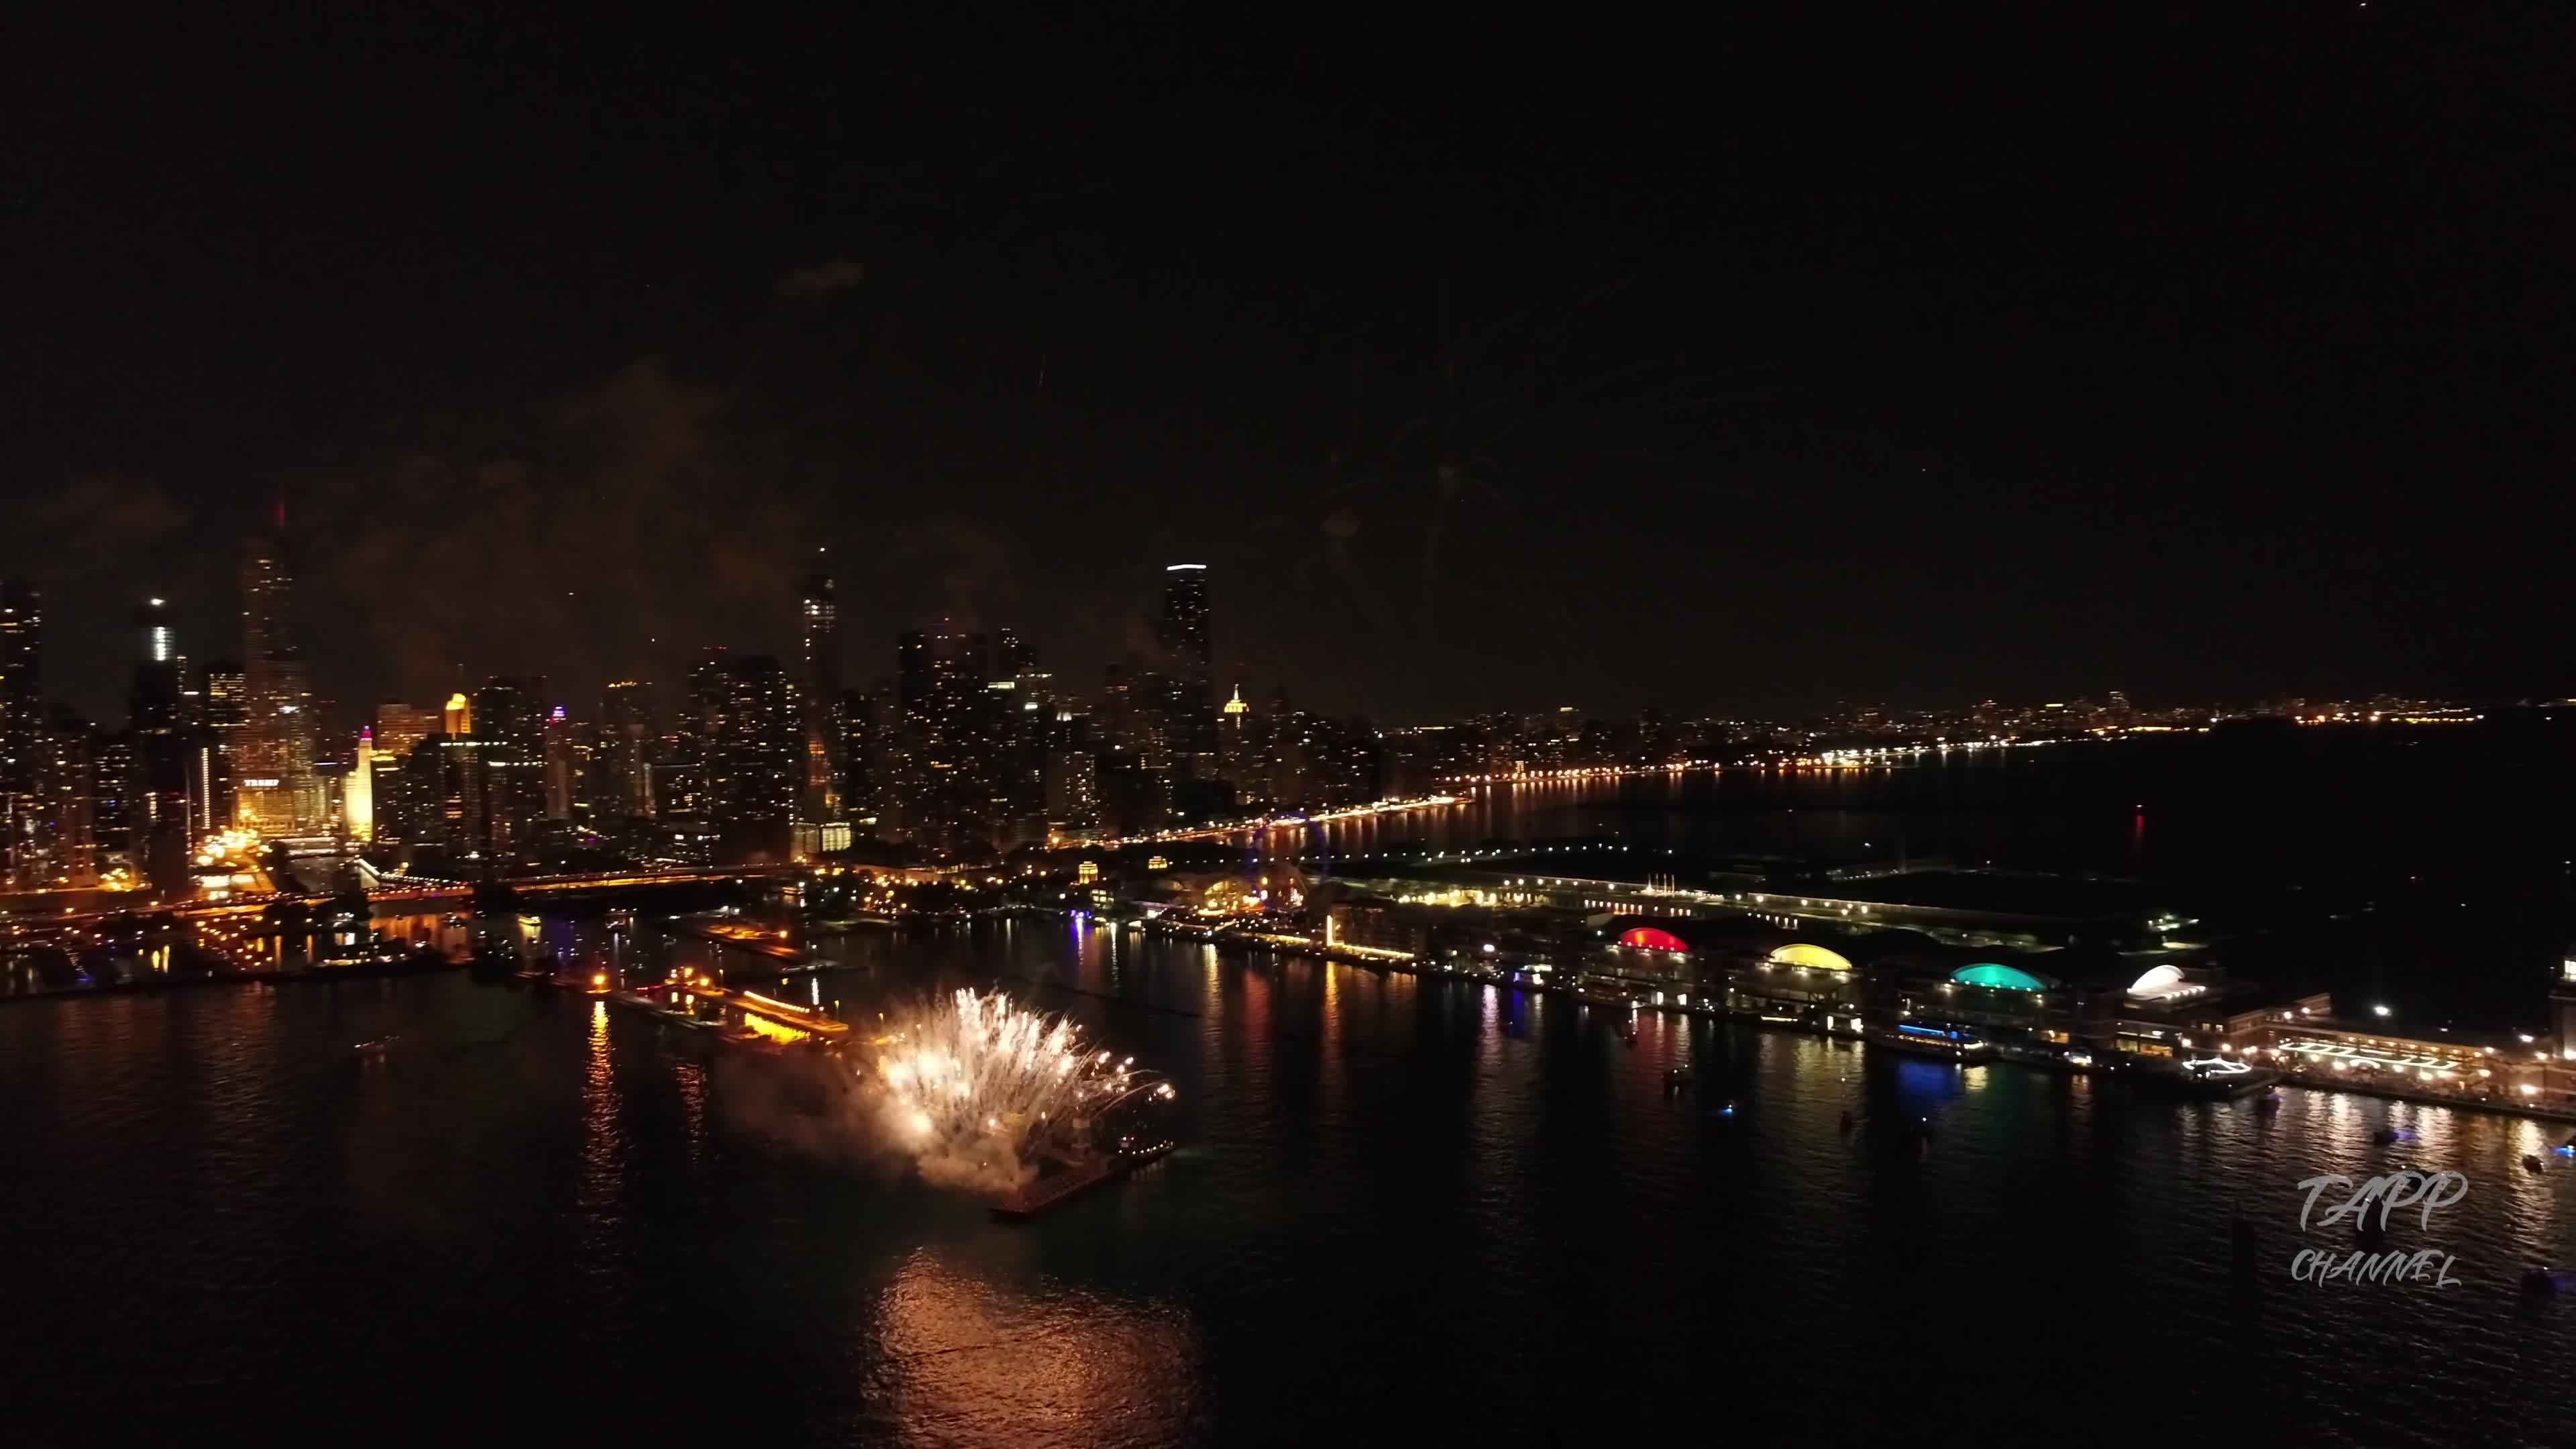 2018, Chicago, Drone, Fireworks, Illinois, Summer Fireworks, Windy City, city drone, cityscape, navy pier, Chicago Aon Summer Fireworks - Drone Footage GIFs